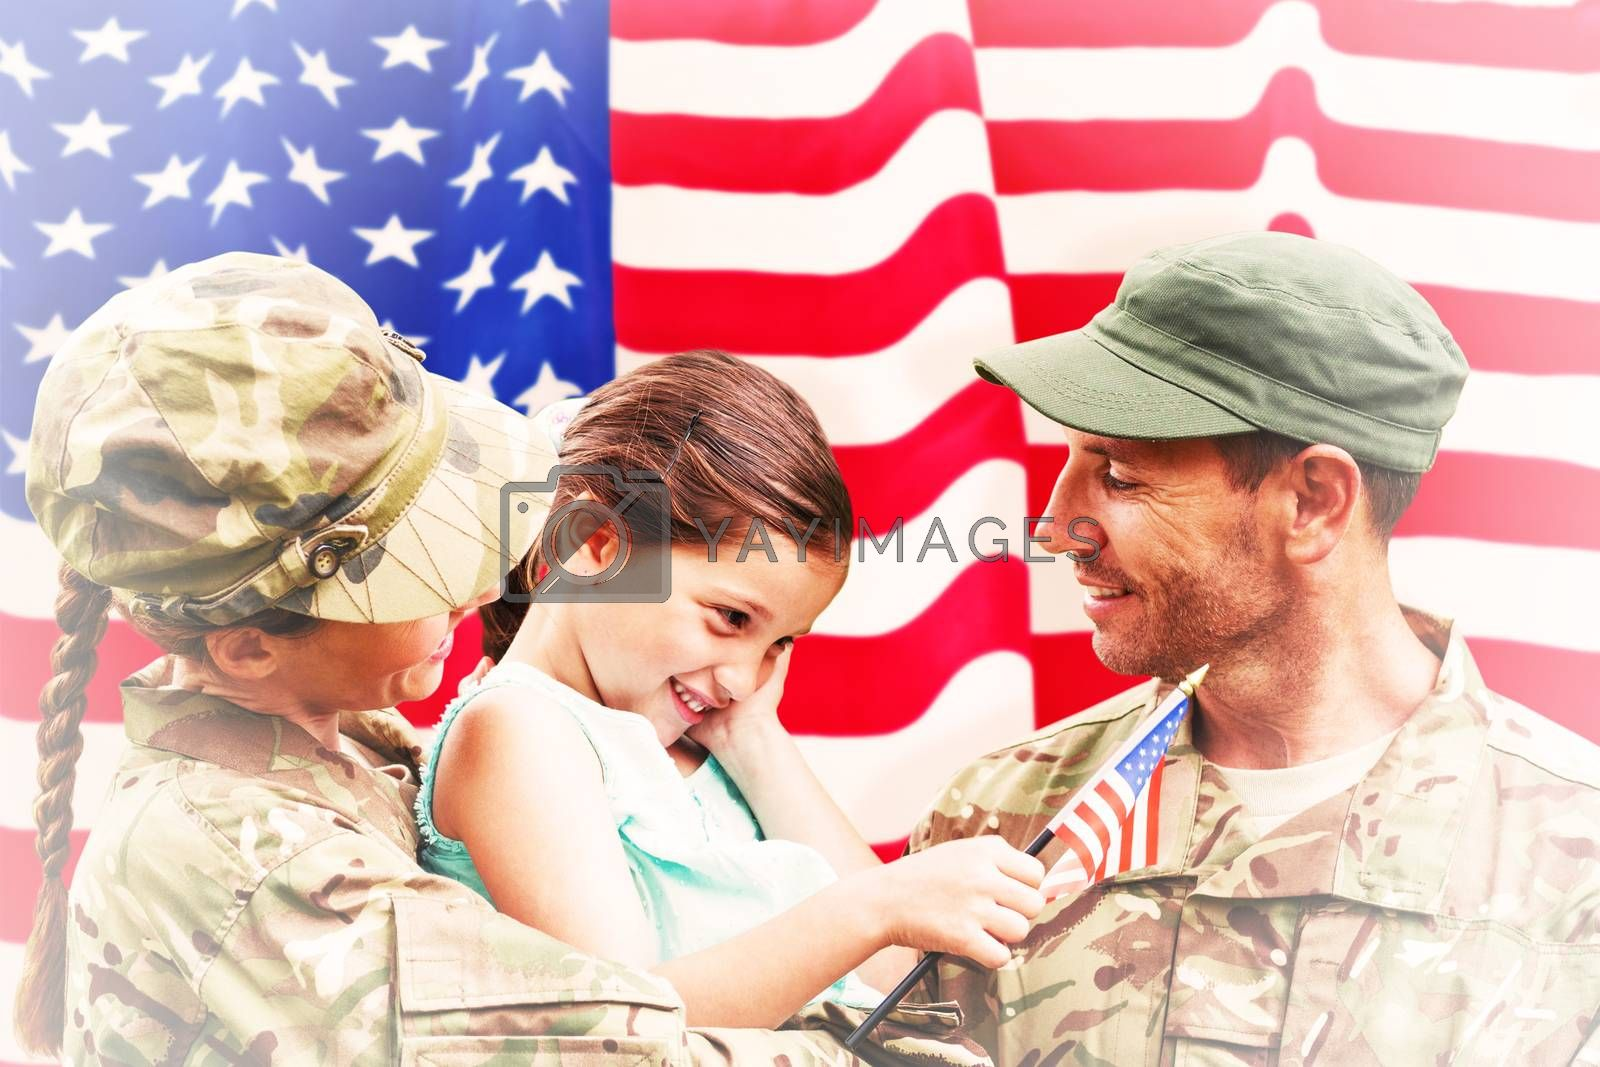 Soldiers reunited with daughter against rippled us flag